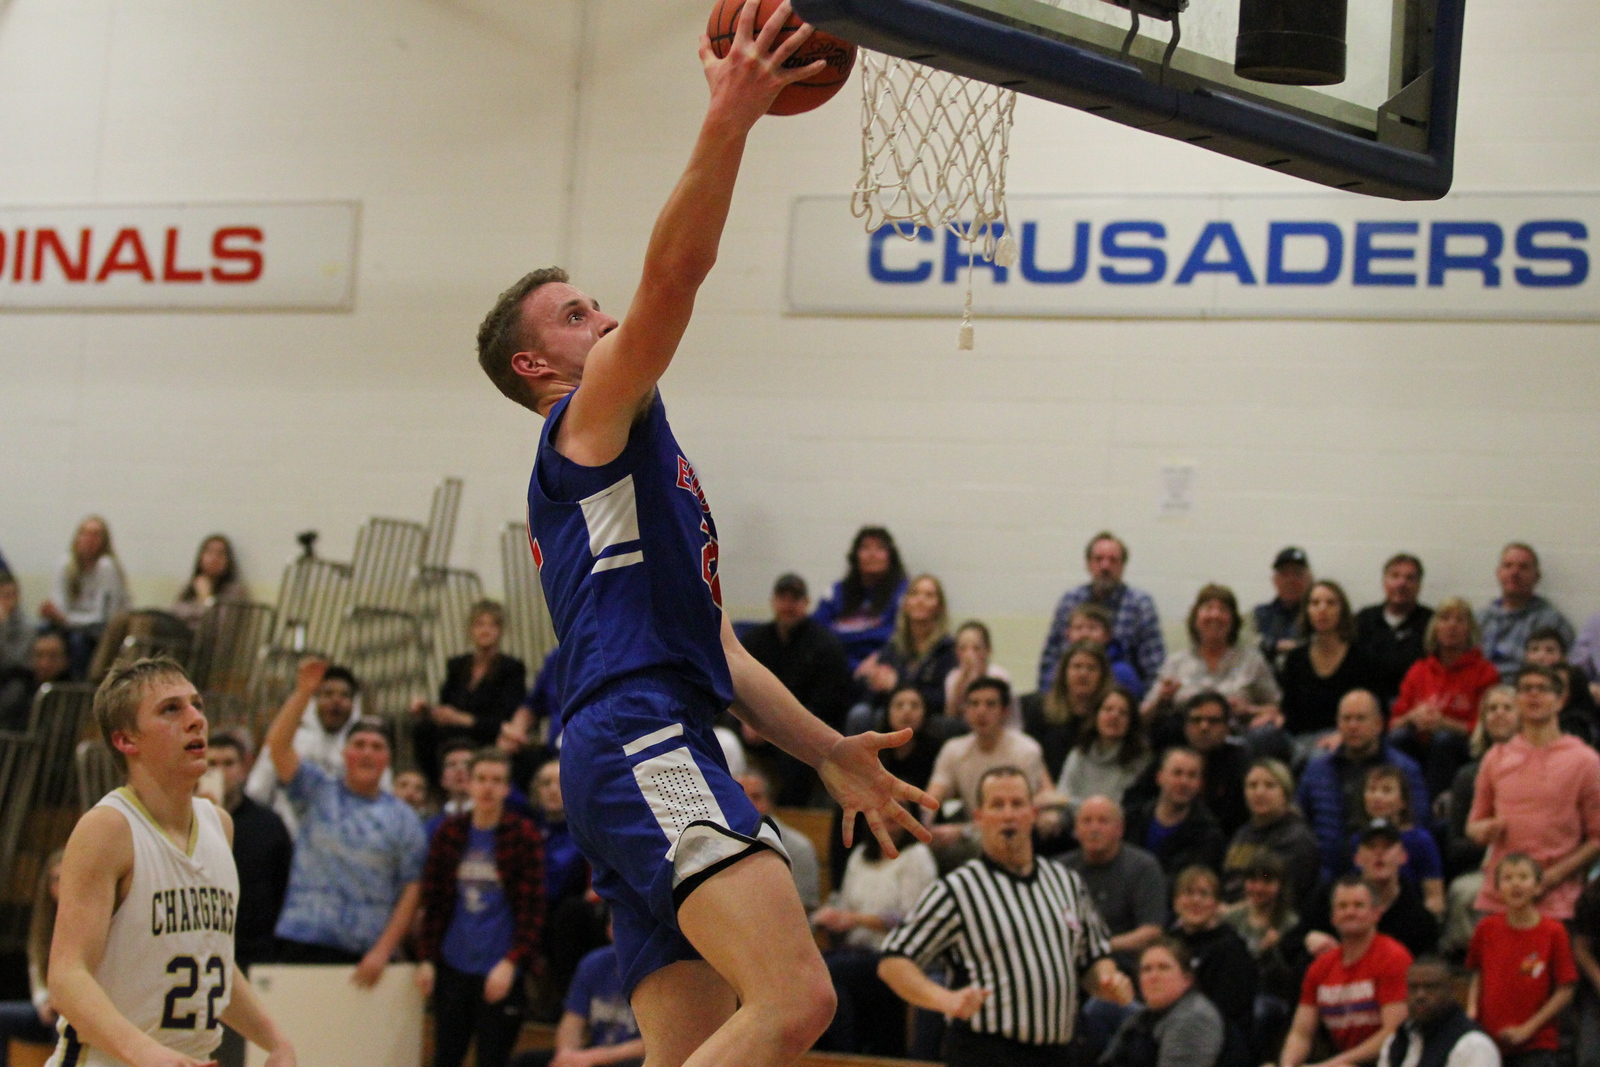 Parkway Christian defeats Inter-City Baptist 61-45 in regional basketball semifinal on March 12, 2018 at Cardinal Mooney. THE MACOMB DAILY PHOTO GALLERY BY GEORGE SPITERI